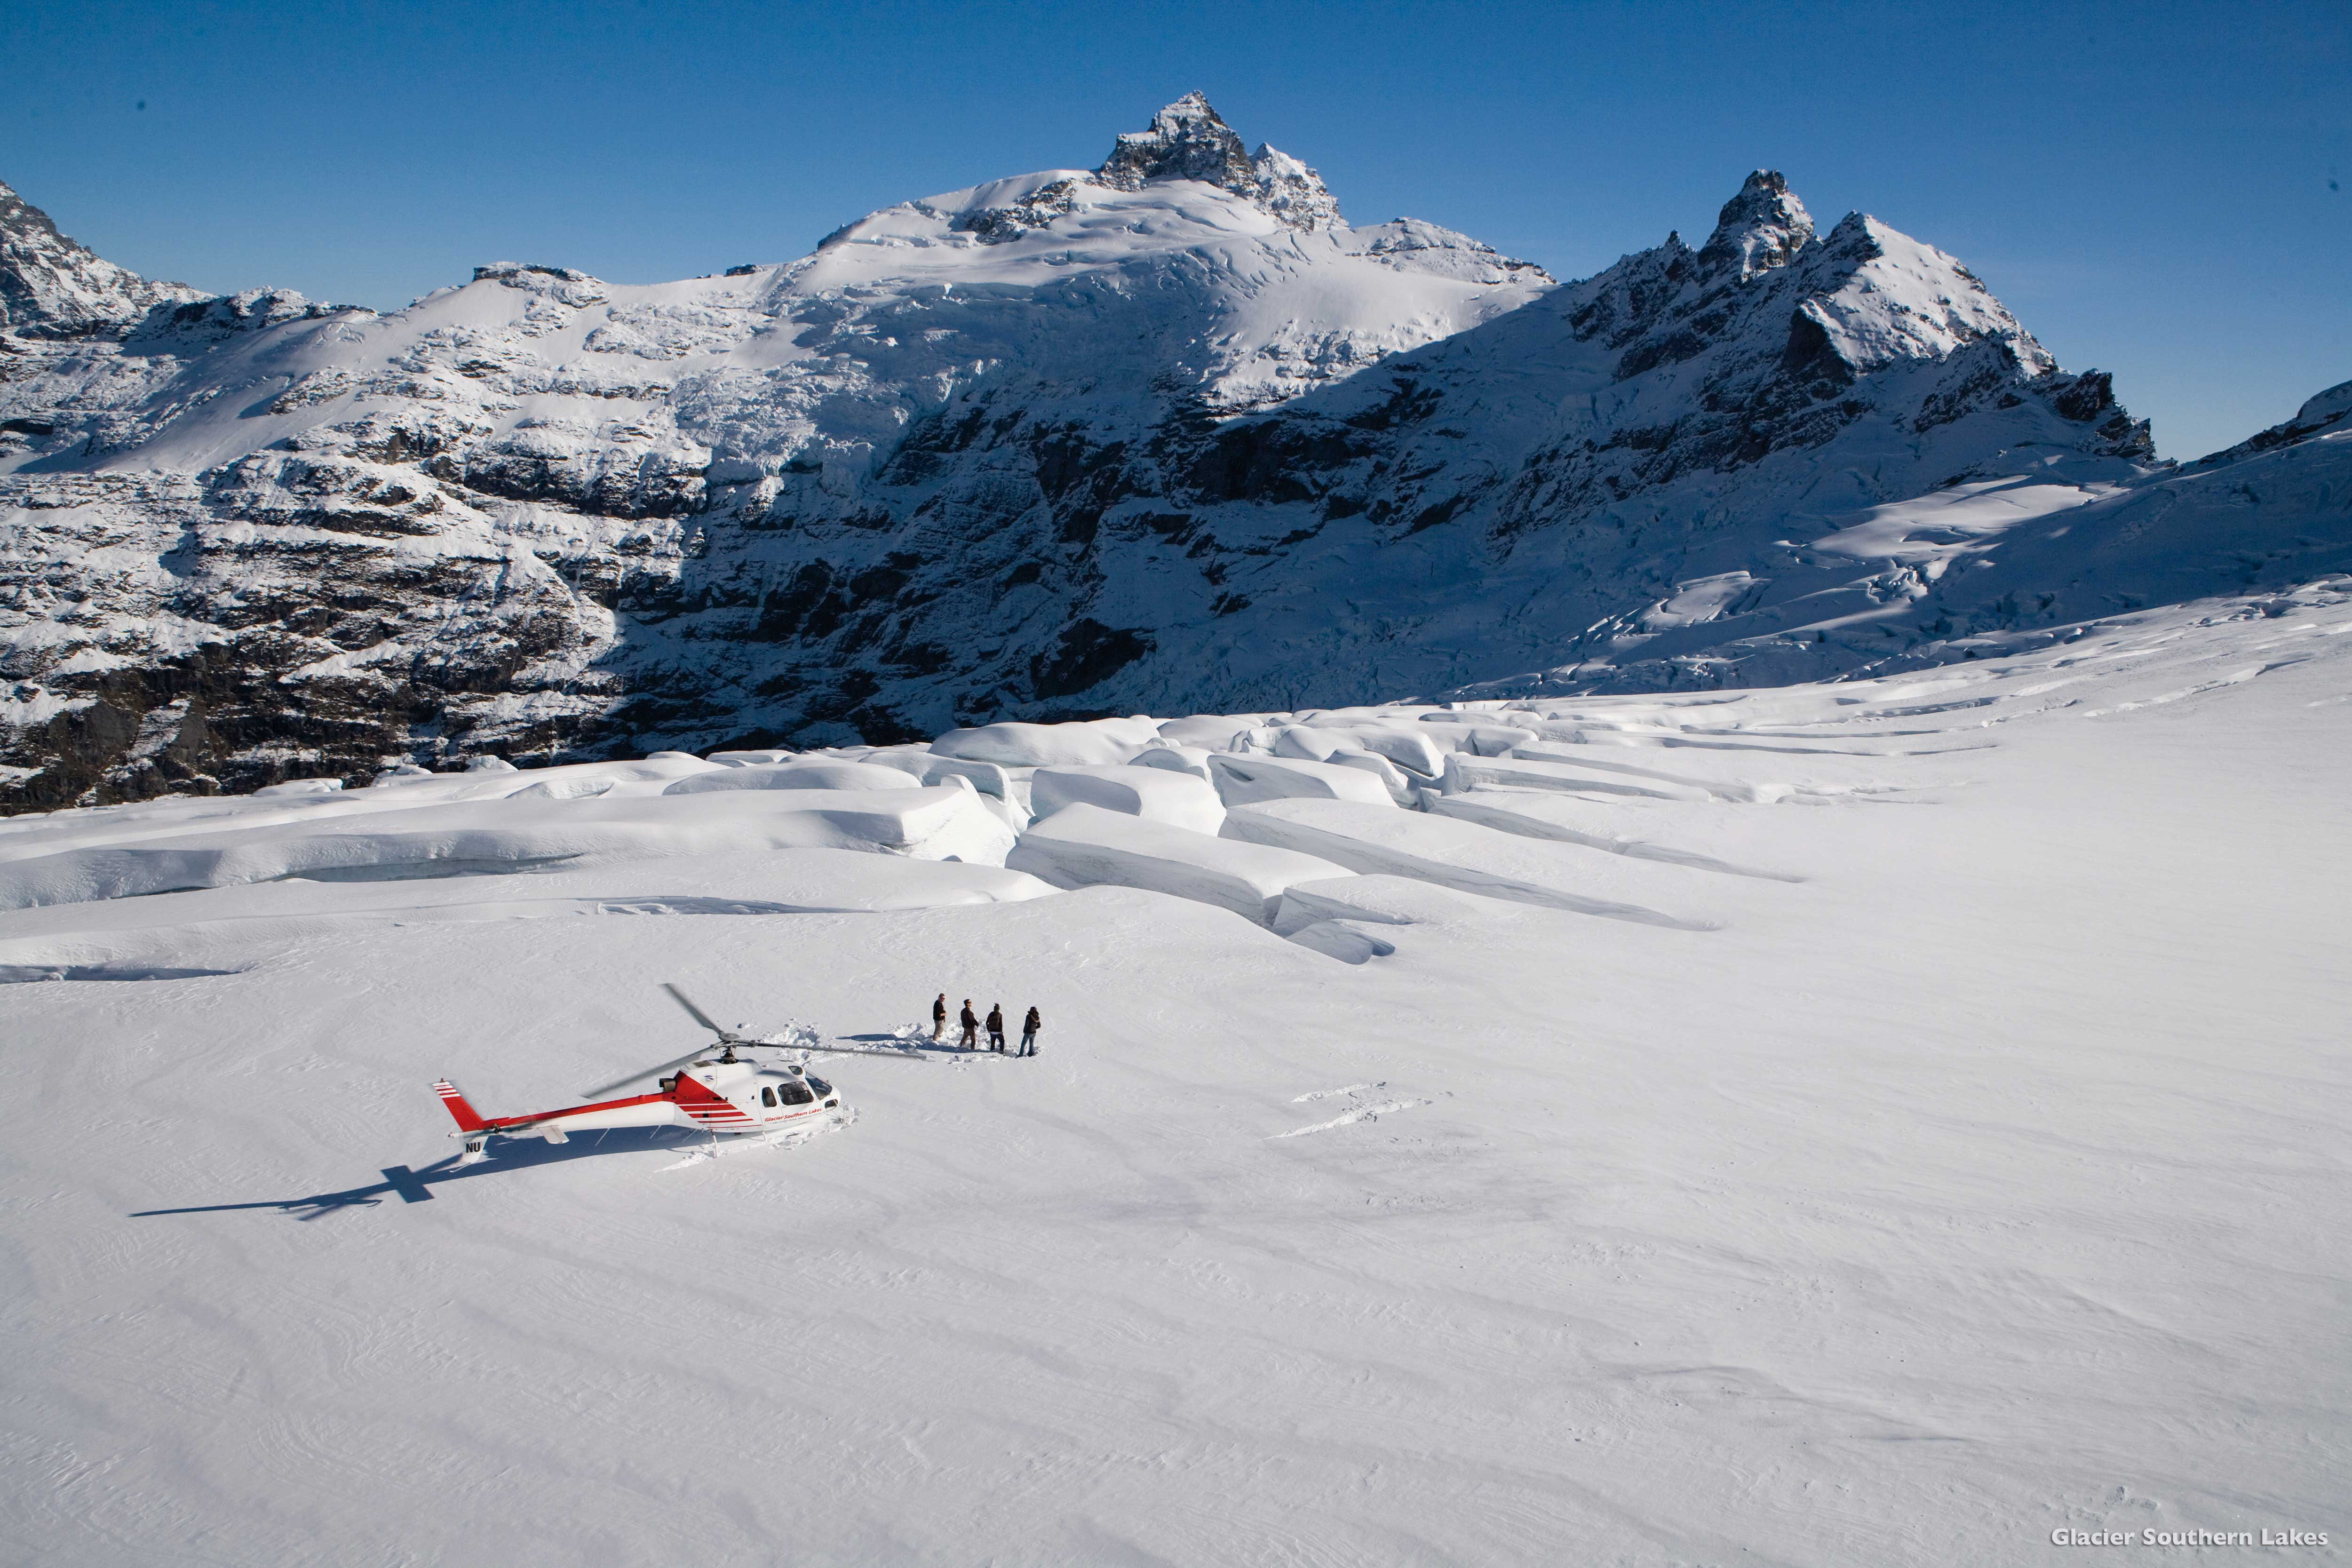 AD Clarke Glacier Queenstown Glacier Southern Lakes Helicopters